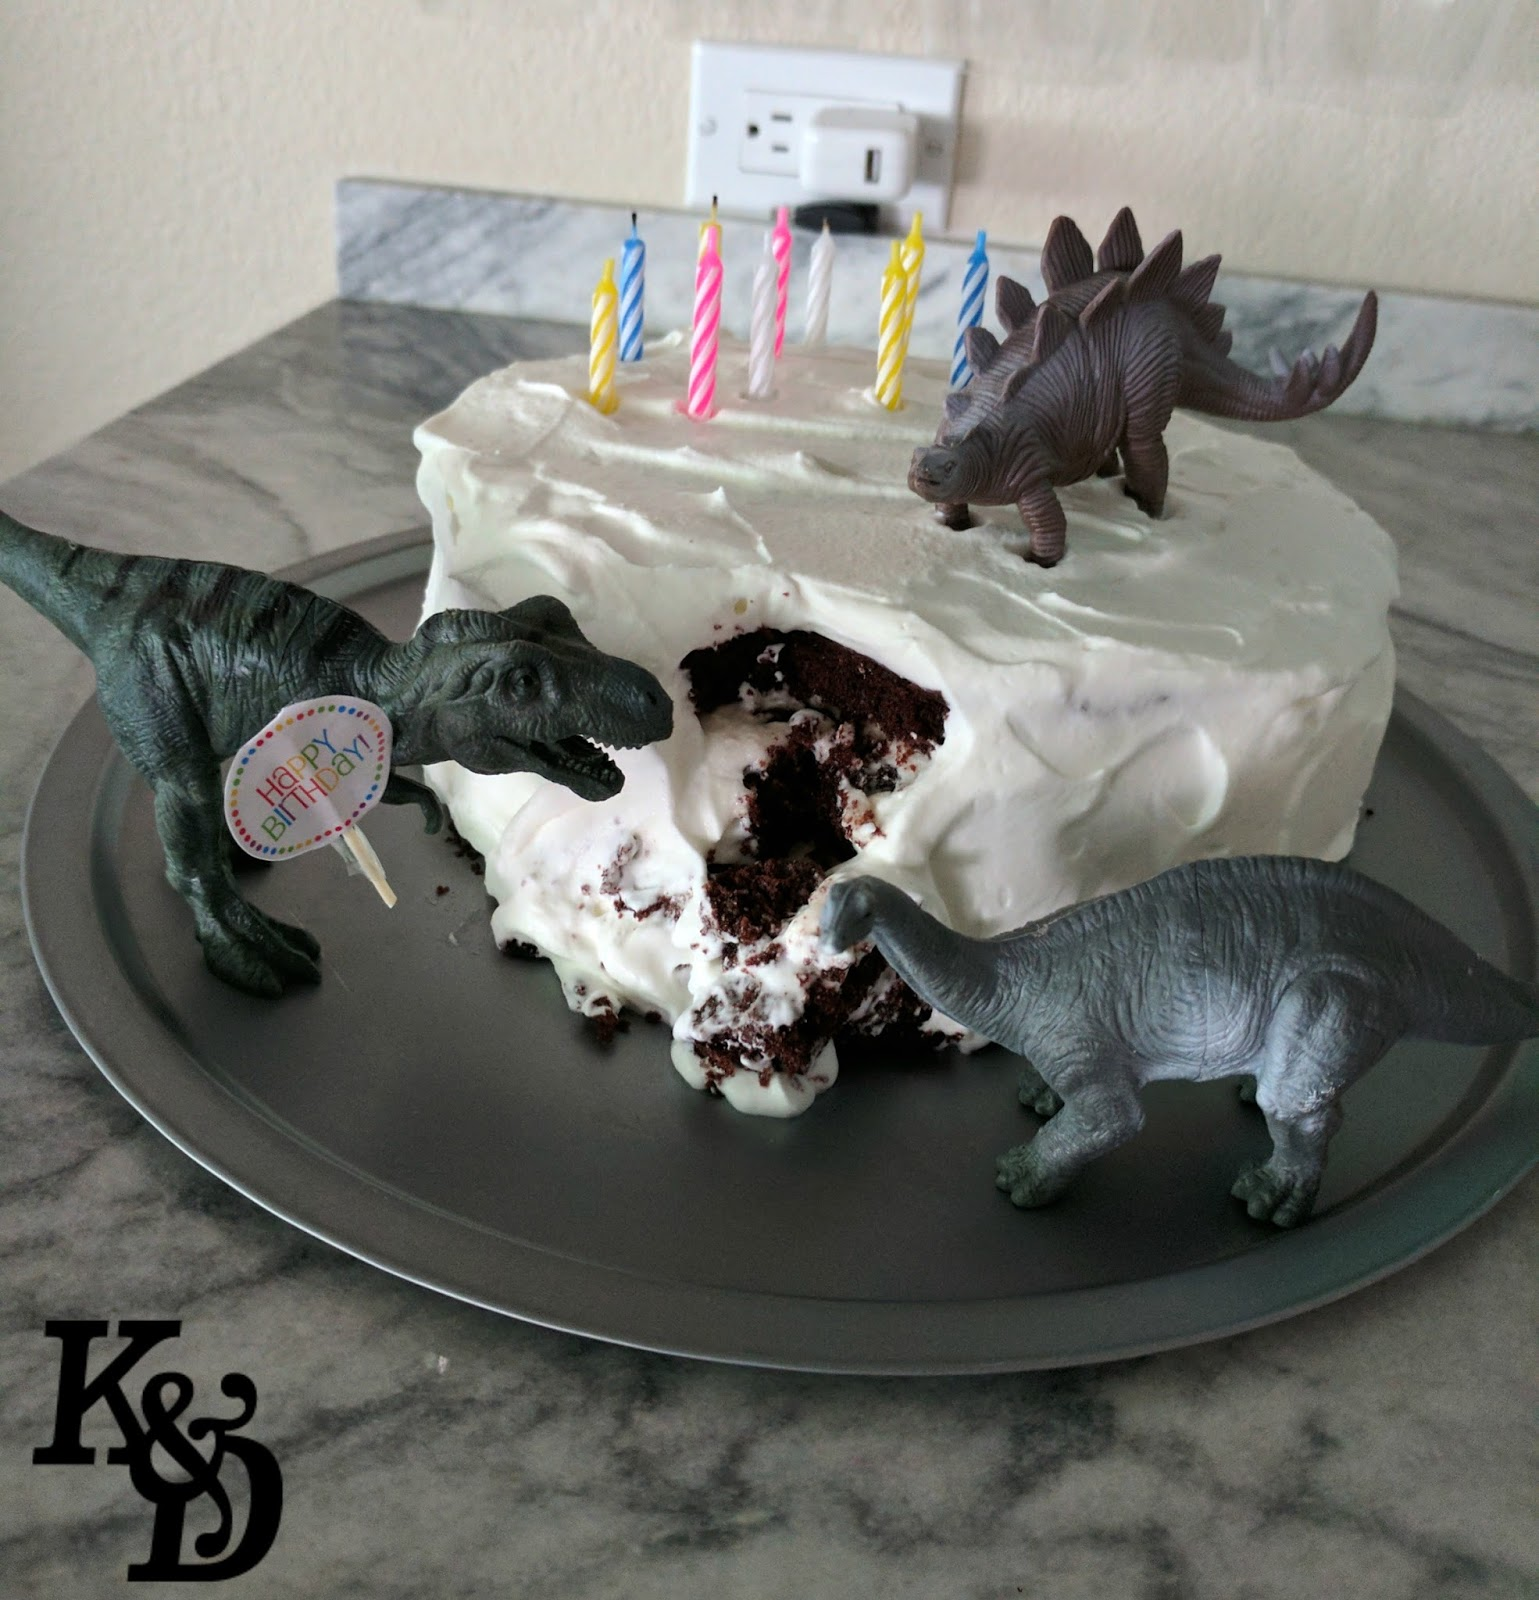 Enjoyable Klein And Dine Birthday Cake Dinosaurs Eating The Cake Funny Birthday Cards Online Inifofree Goldxyz